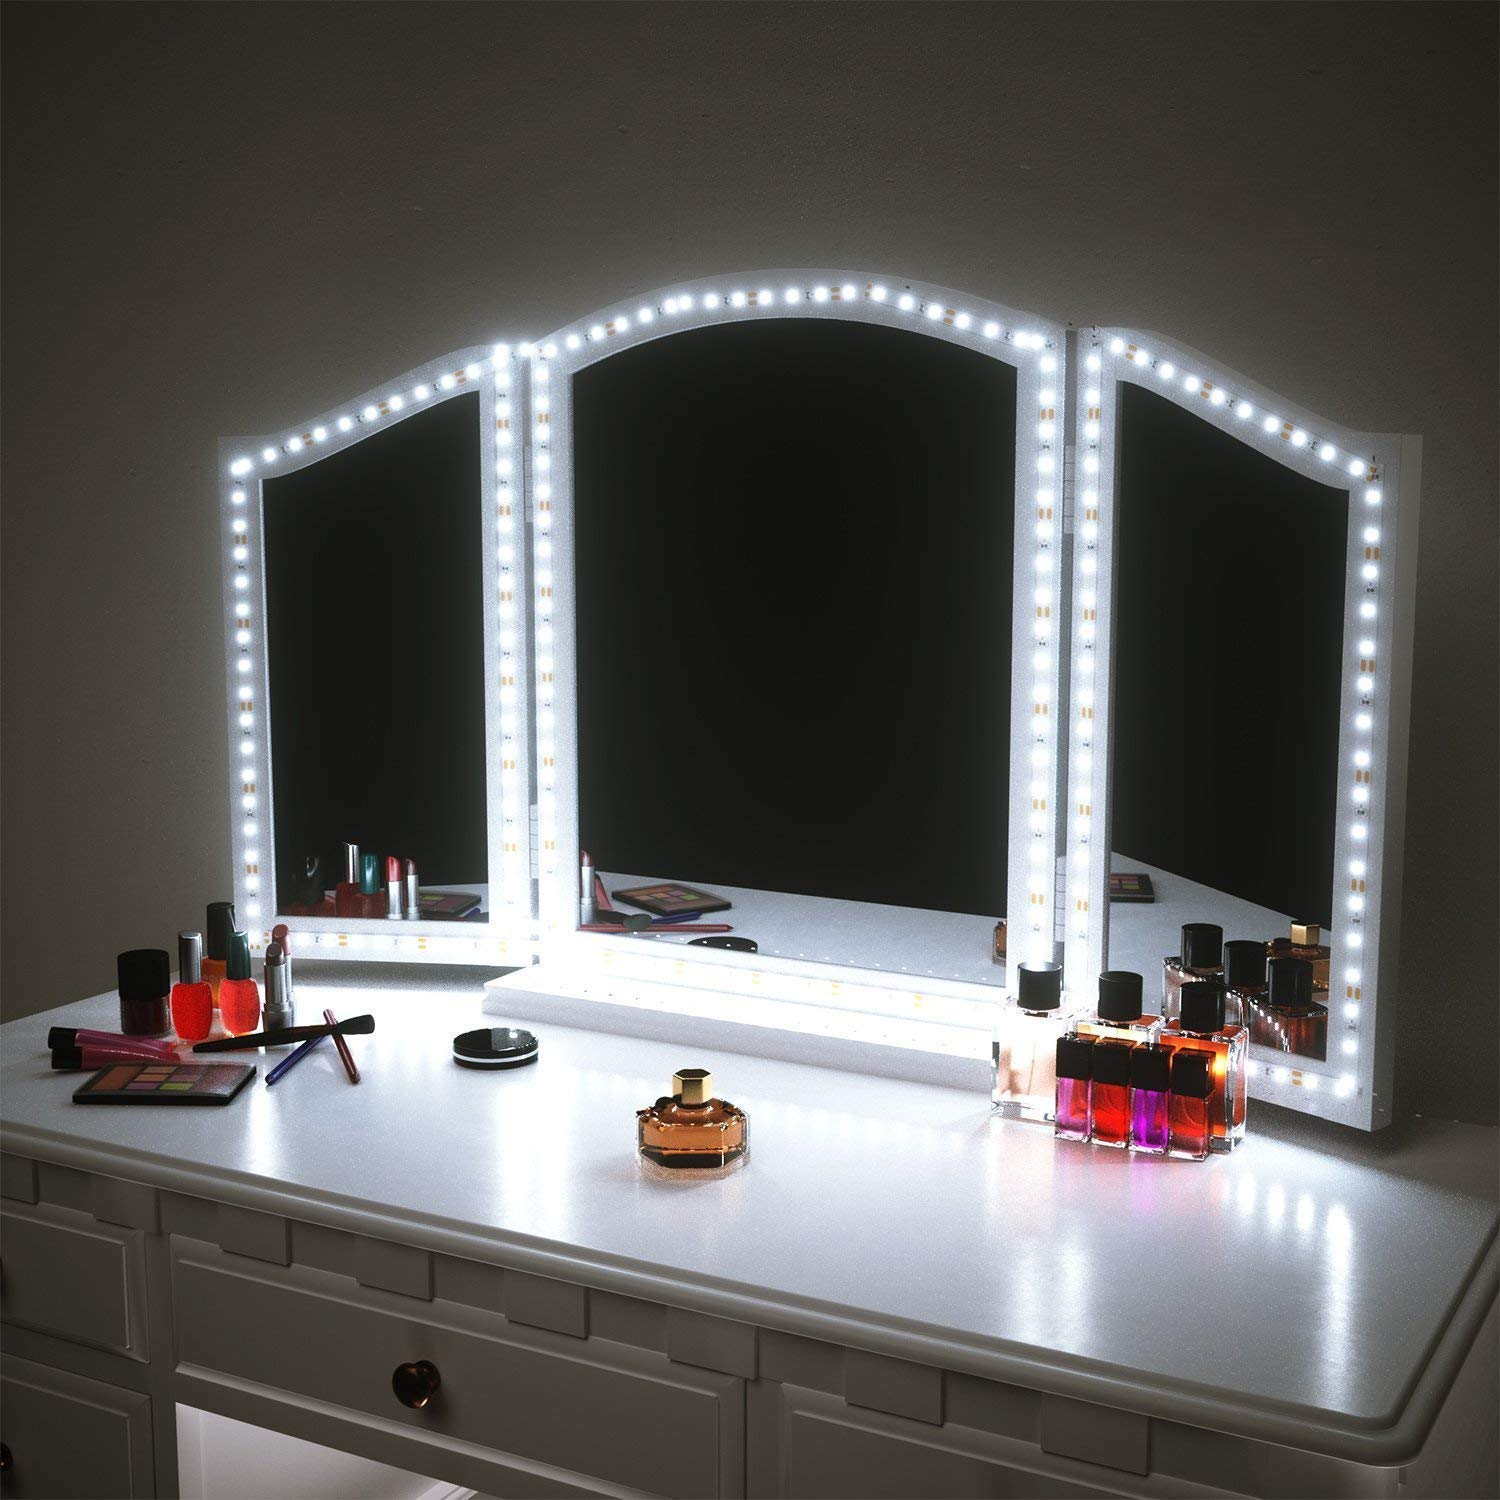 Led vanity mirror lights for makeup dressing table vanity set 13ft flexible led light strip kit 6000k daylight white with dimmer and power supply